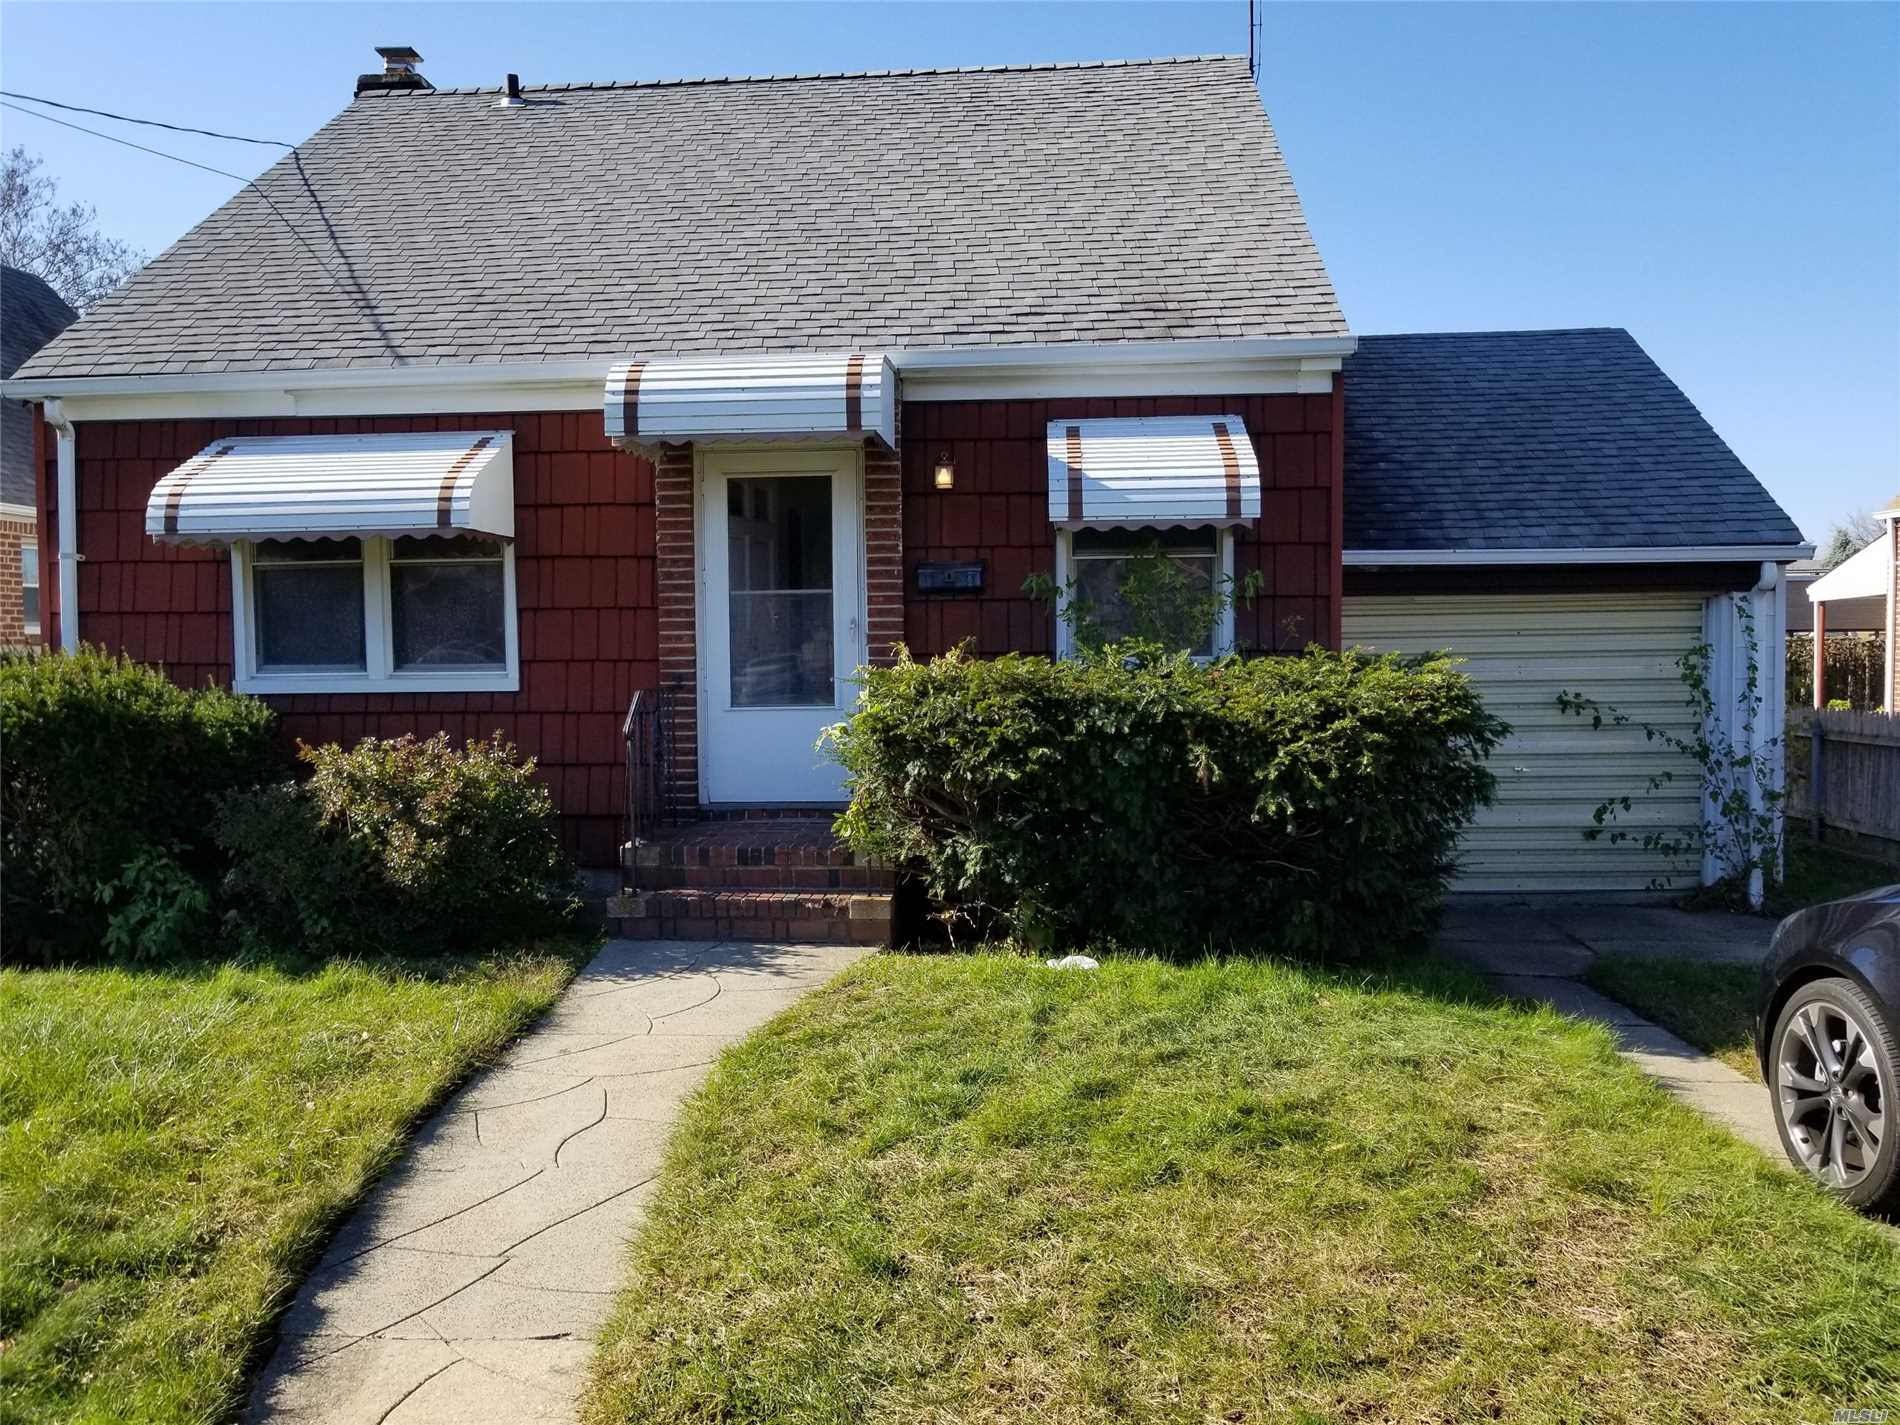 Best Buy In Town! Clean, Nice Cape With Oak Eat In Kitchen, Wood Floors, Updated Weil Mclain Burner, Sep Hotwater Heater, Two Full Bths, One Updated, Best Priced Home In Franklin Square!